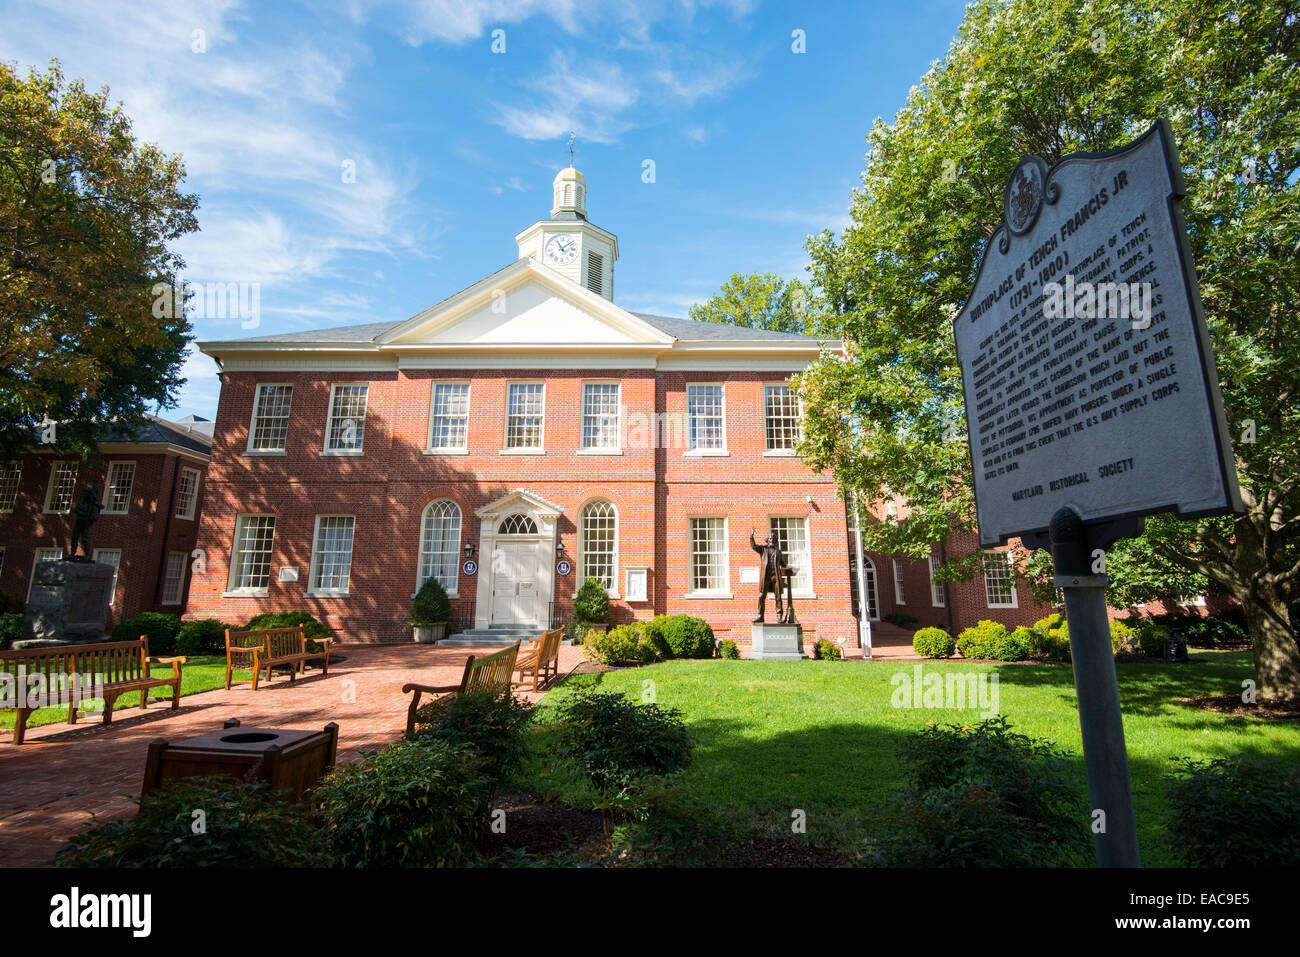 The Talbot County Courthouse in Easton, Maryland USA Stock Photo